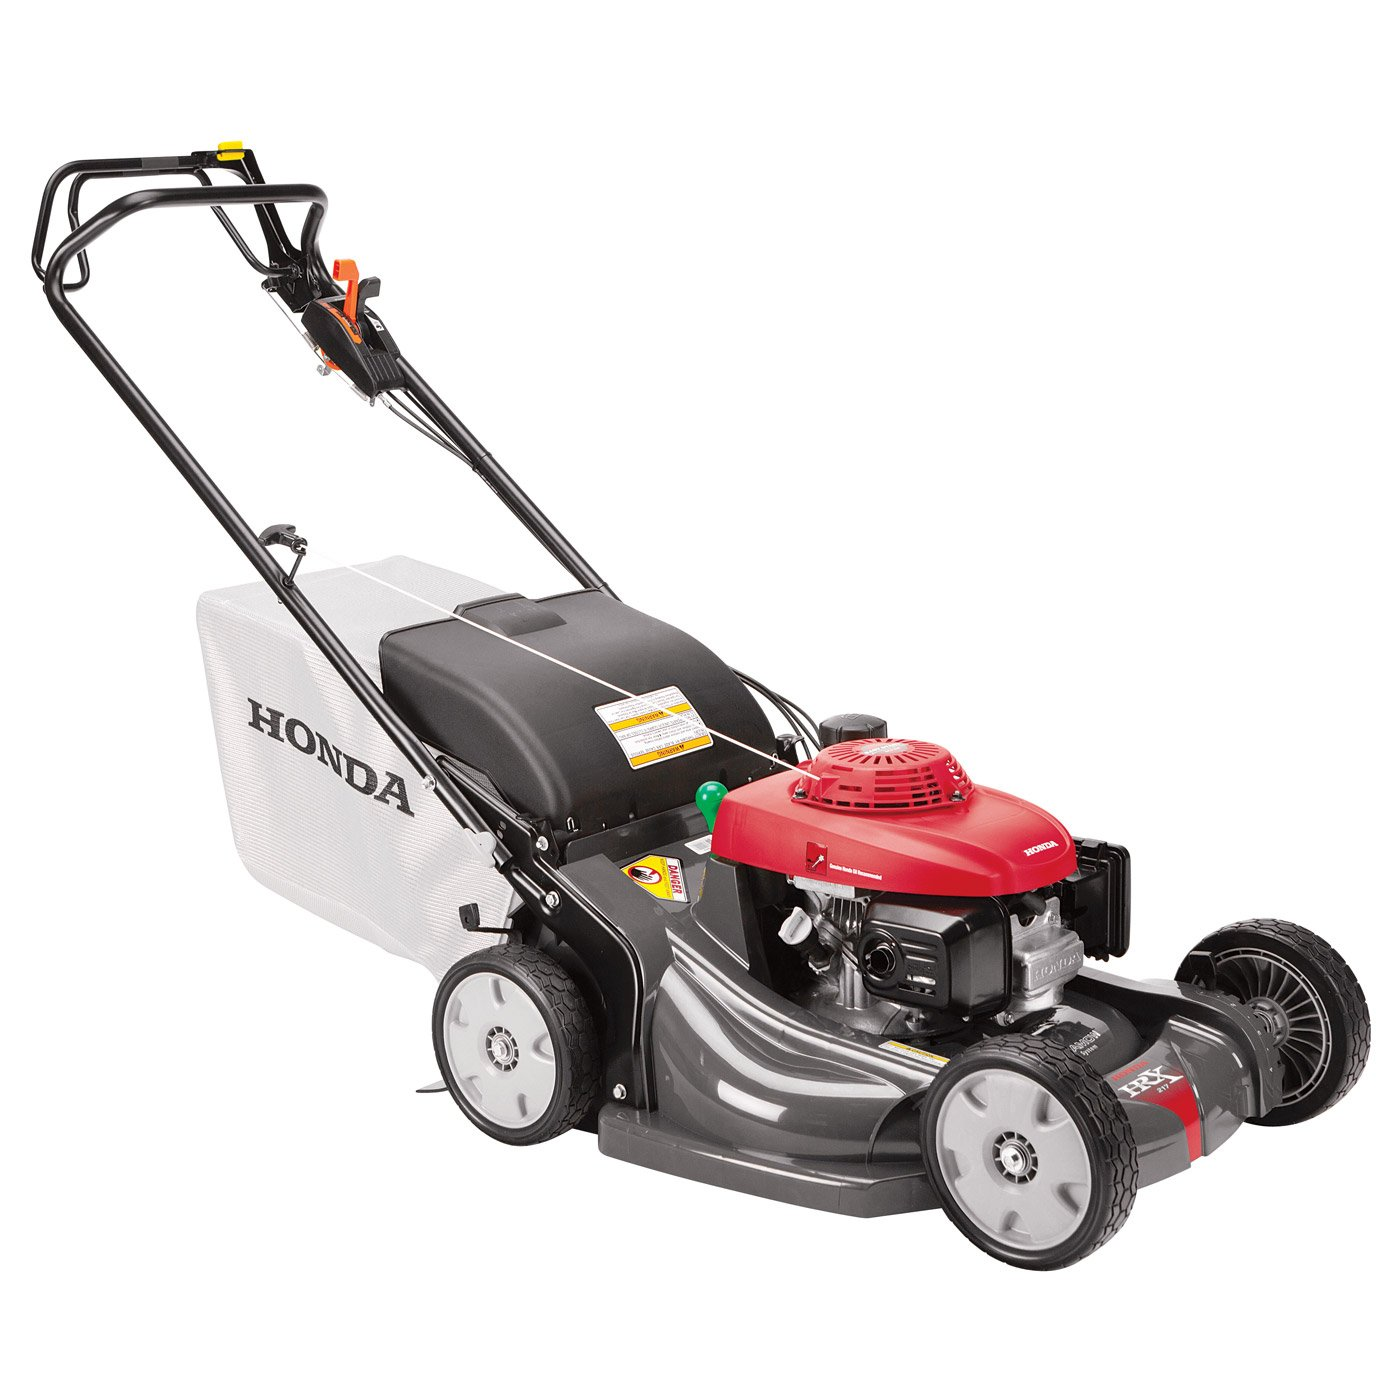 Amazon.com : Honda HRX217K4HYA HRX Series Lawn Mowers (Discontinued by  Manufacturer) : Garden & Outdoor